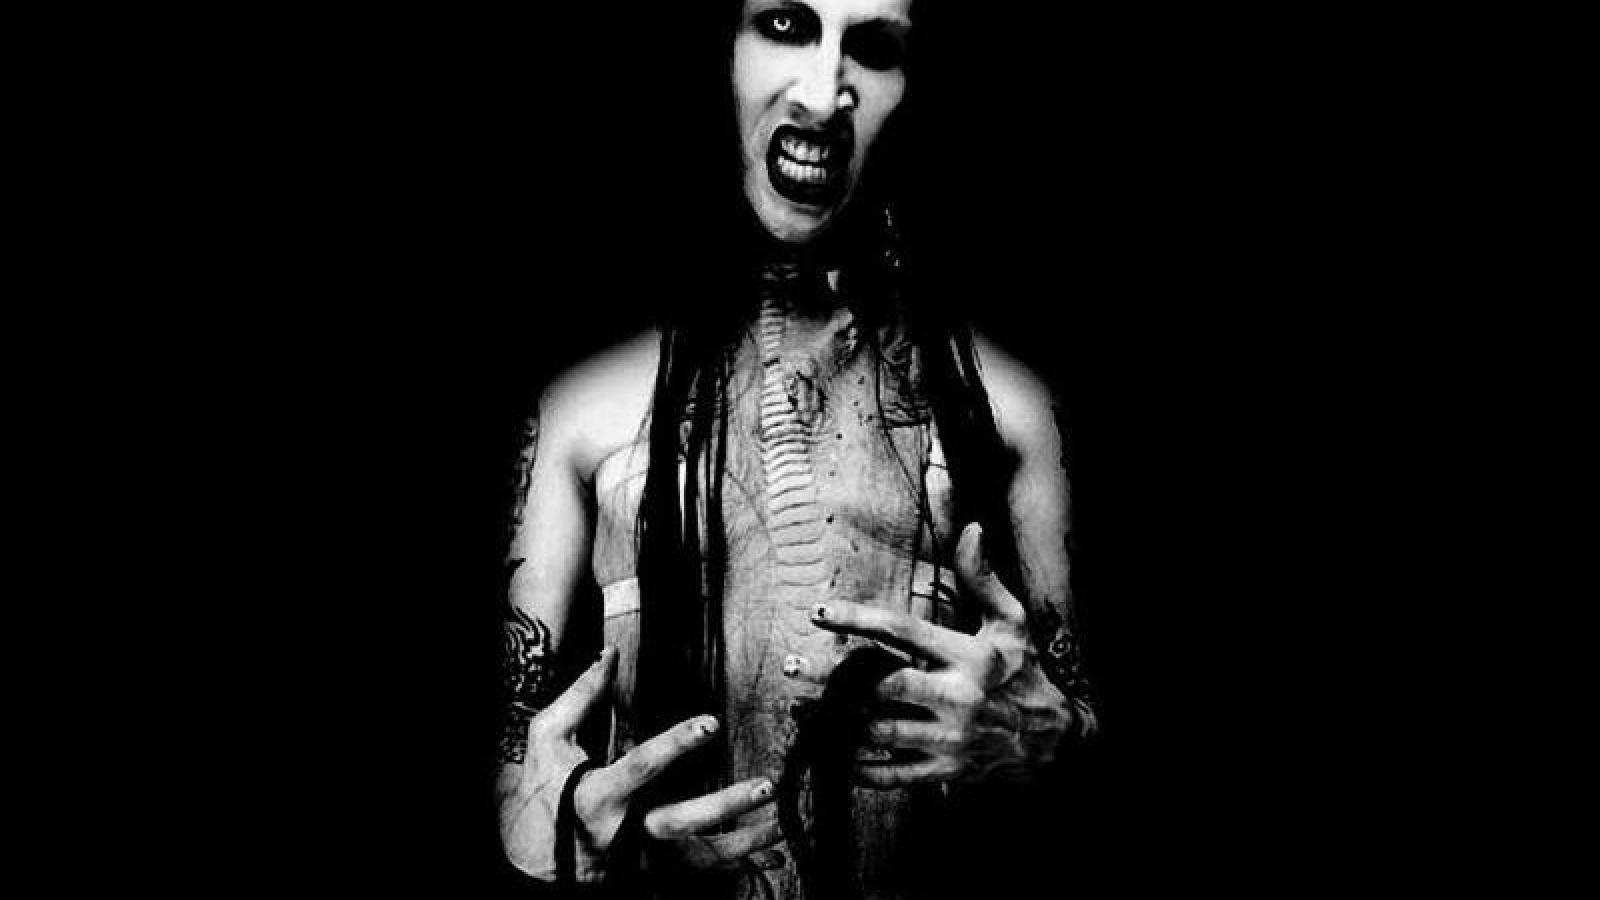 Marilyn Manson 2017 Wallpapers Wallpaper Cave